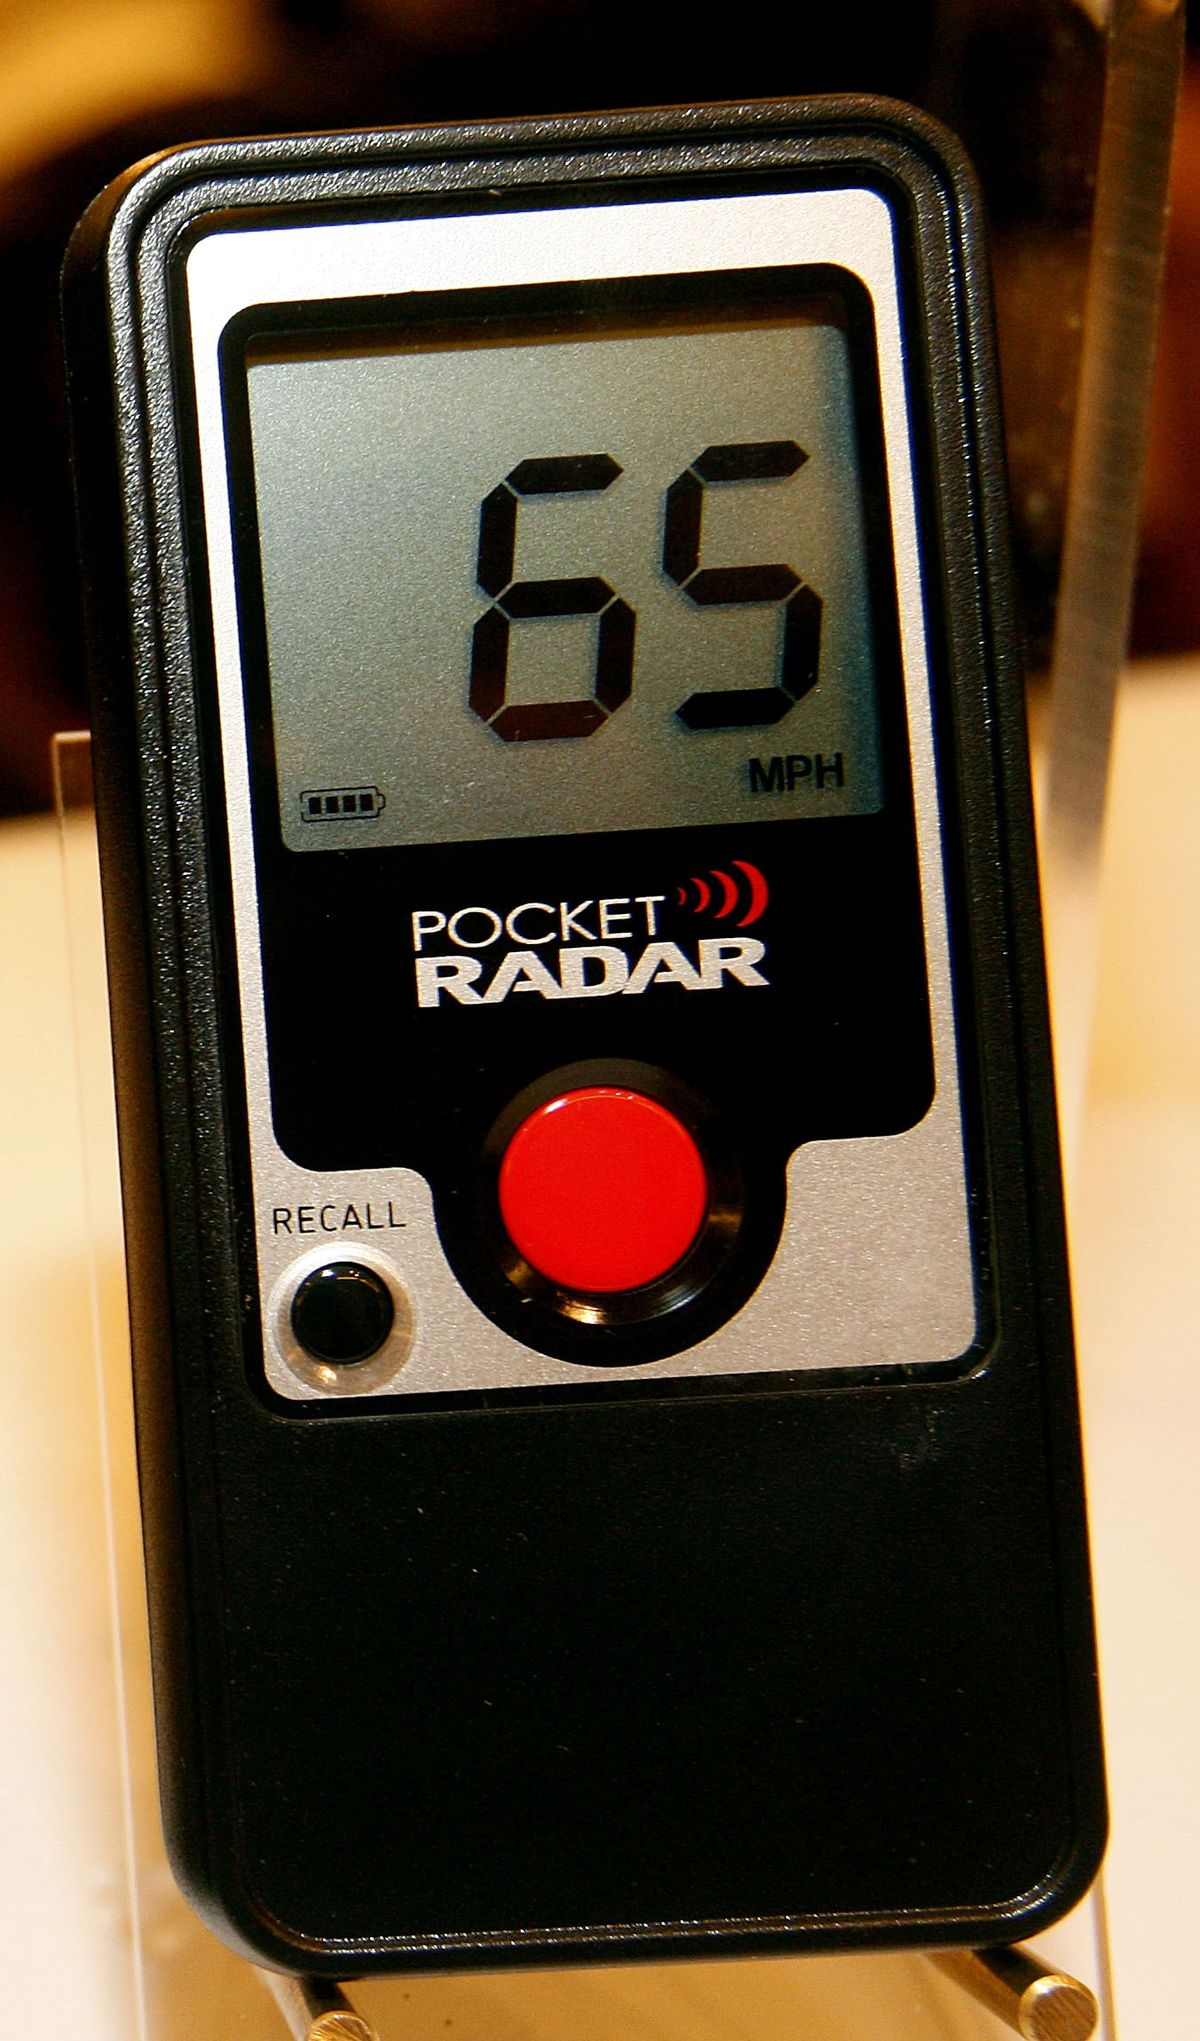 Pocket Radar - Wikipedia